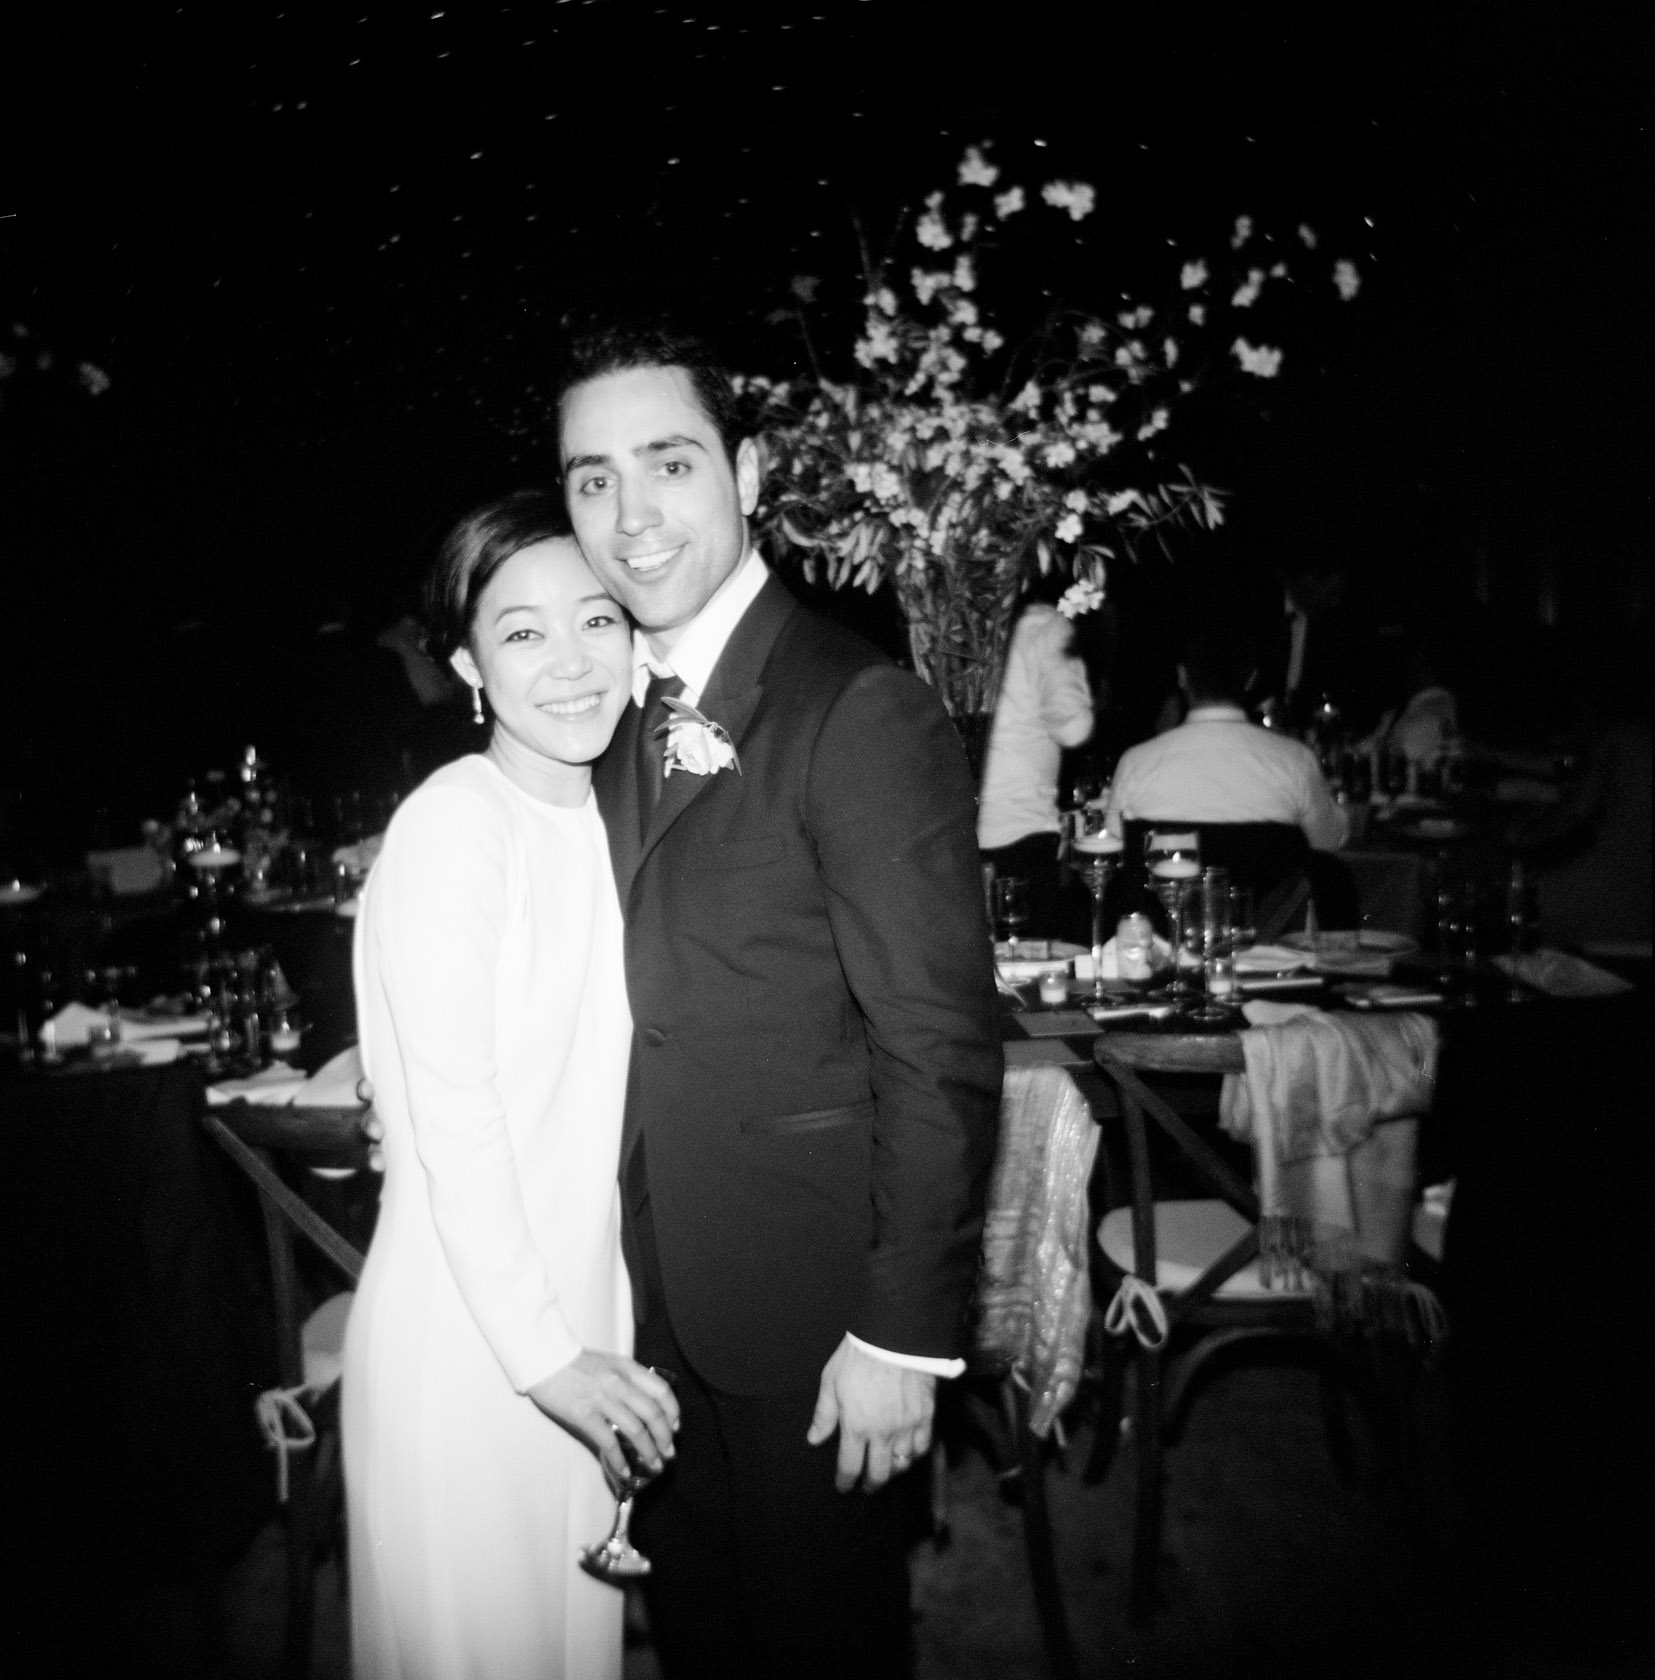 new orleans wedding reception on film at cac - 07